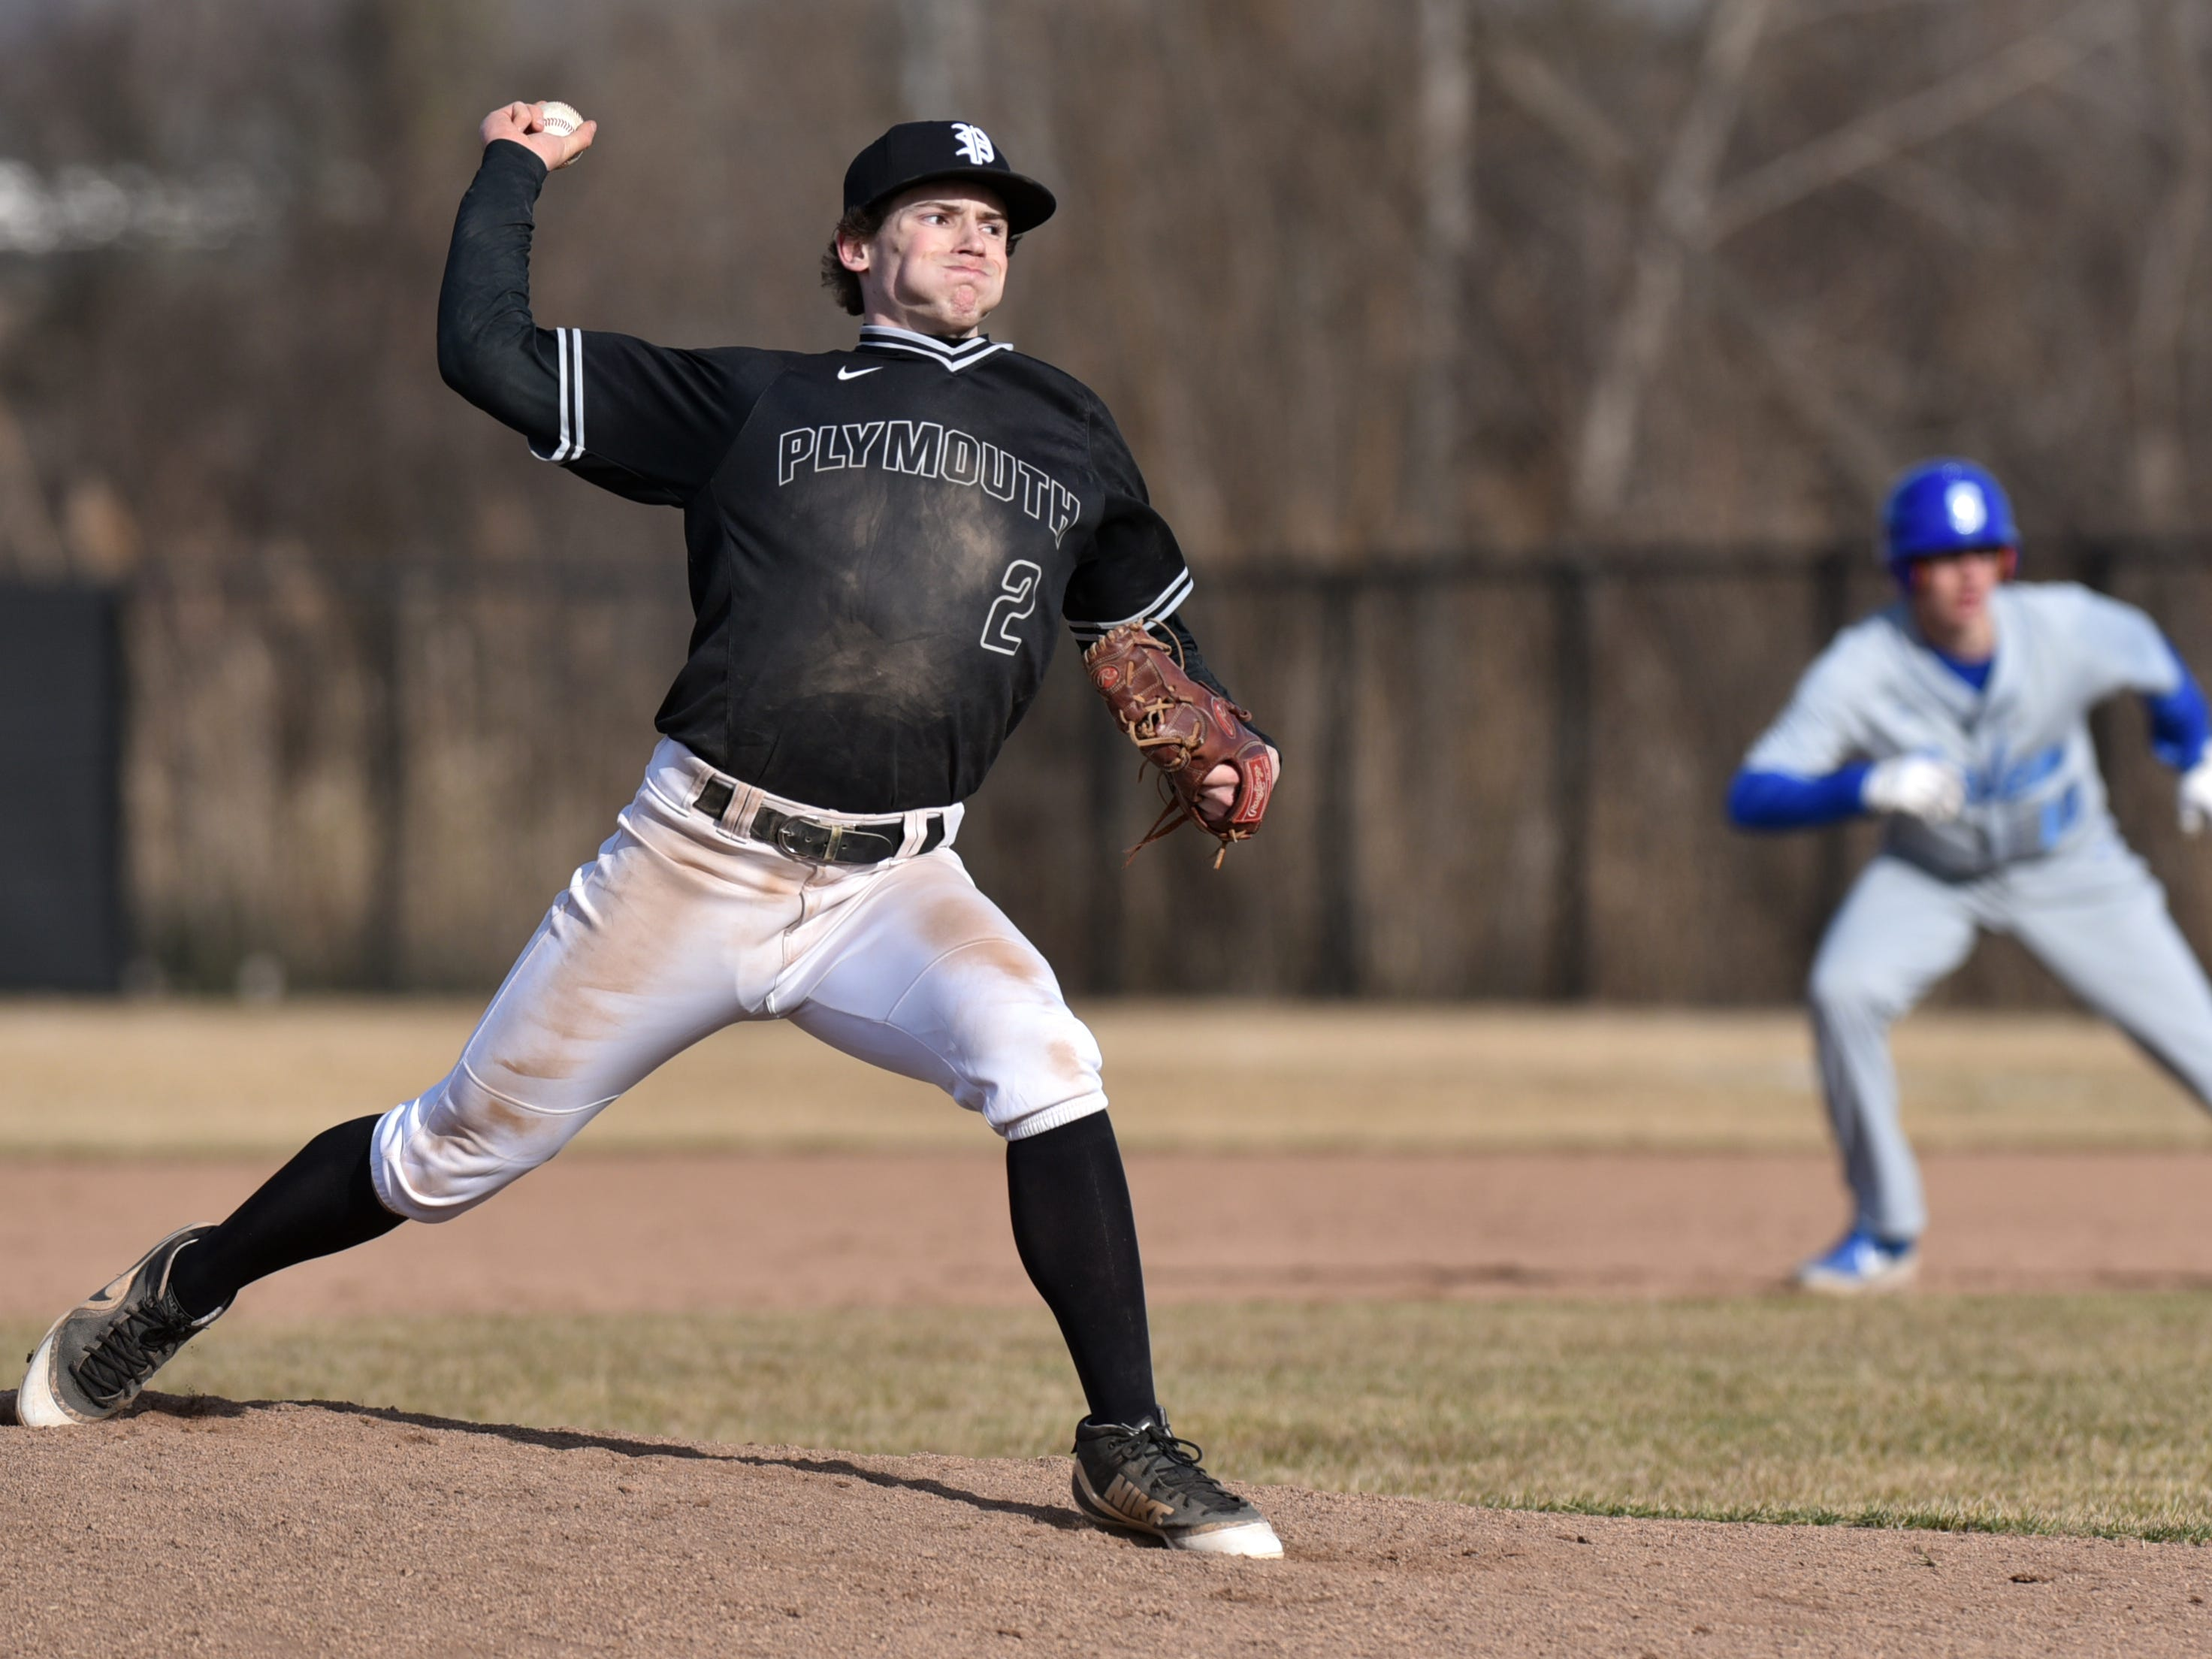 With a runner on first Wildcat pitcher Nick Koski works to home.